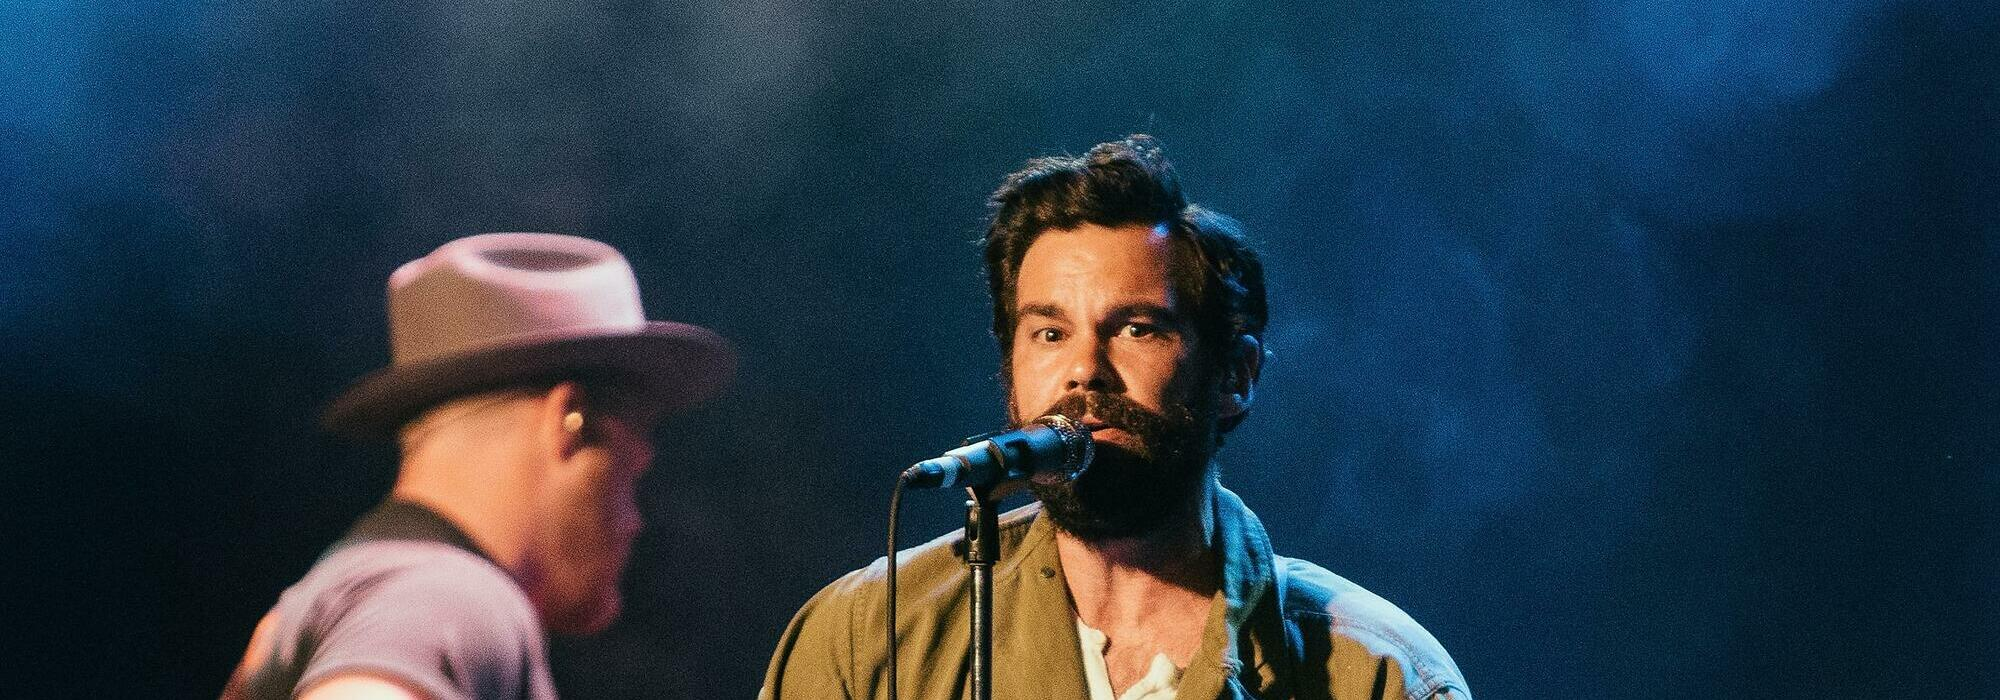 A The Lone Bellow live event